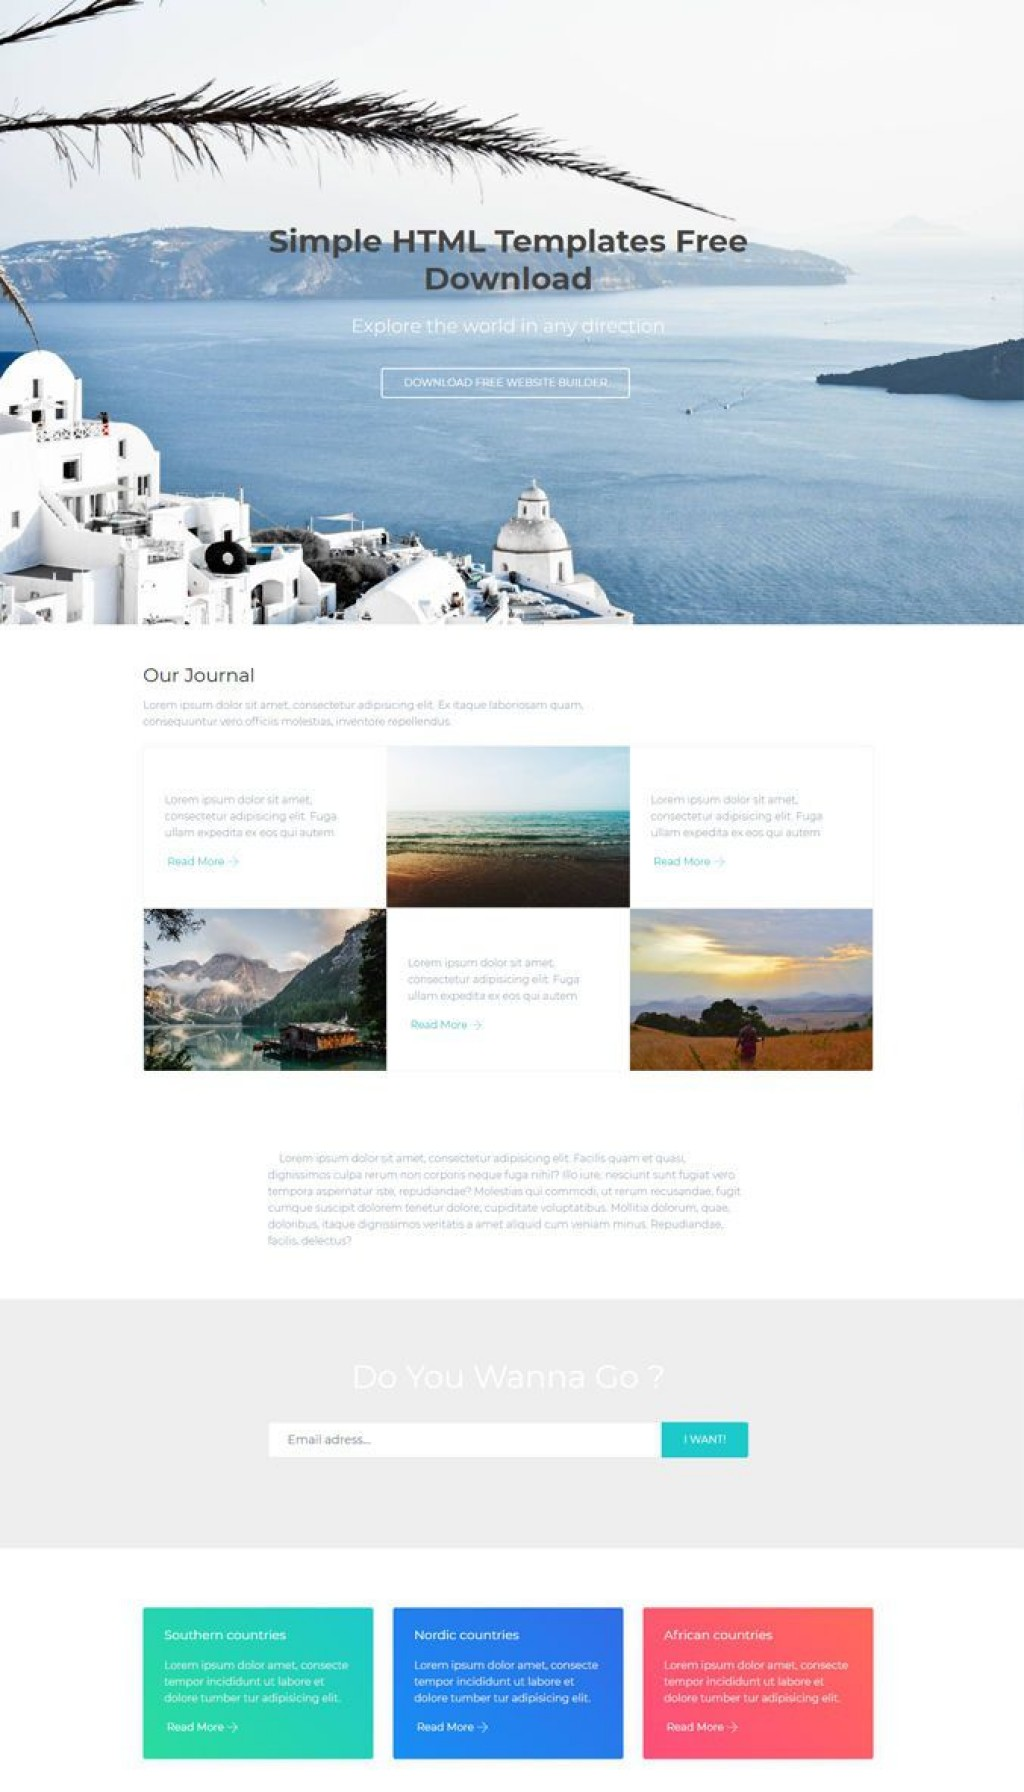 008 Frightening Simple One Page Website Template Free Download Example  Html With CsLarge